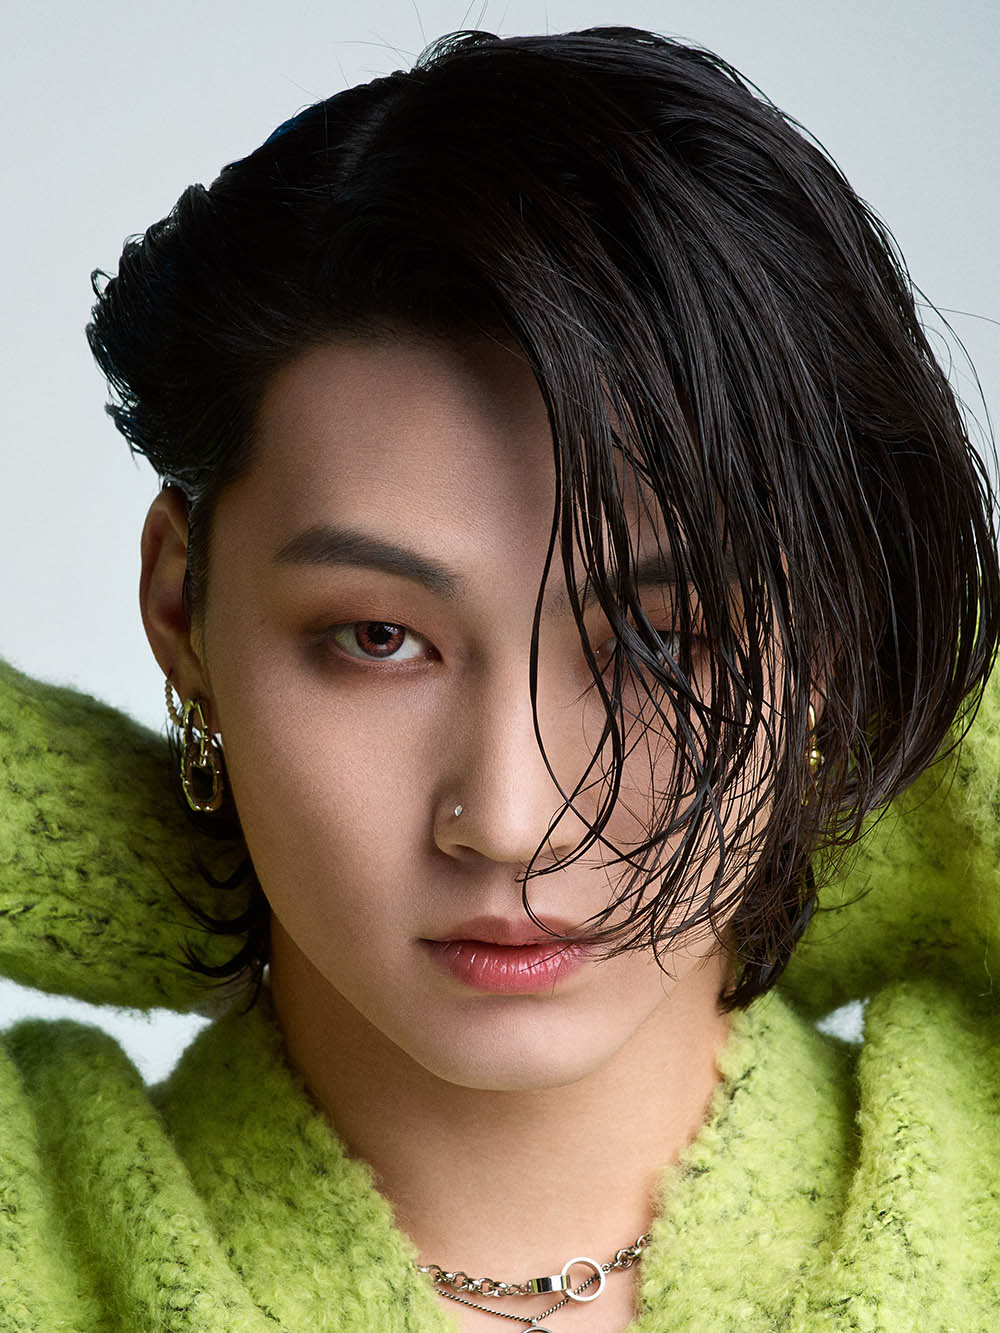 GOT7's JB covers Allure May 2020 Digital Edition by Ahn Jooyoung